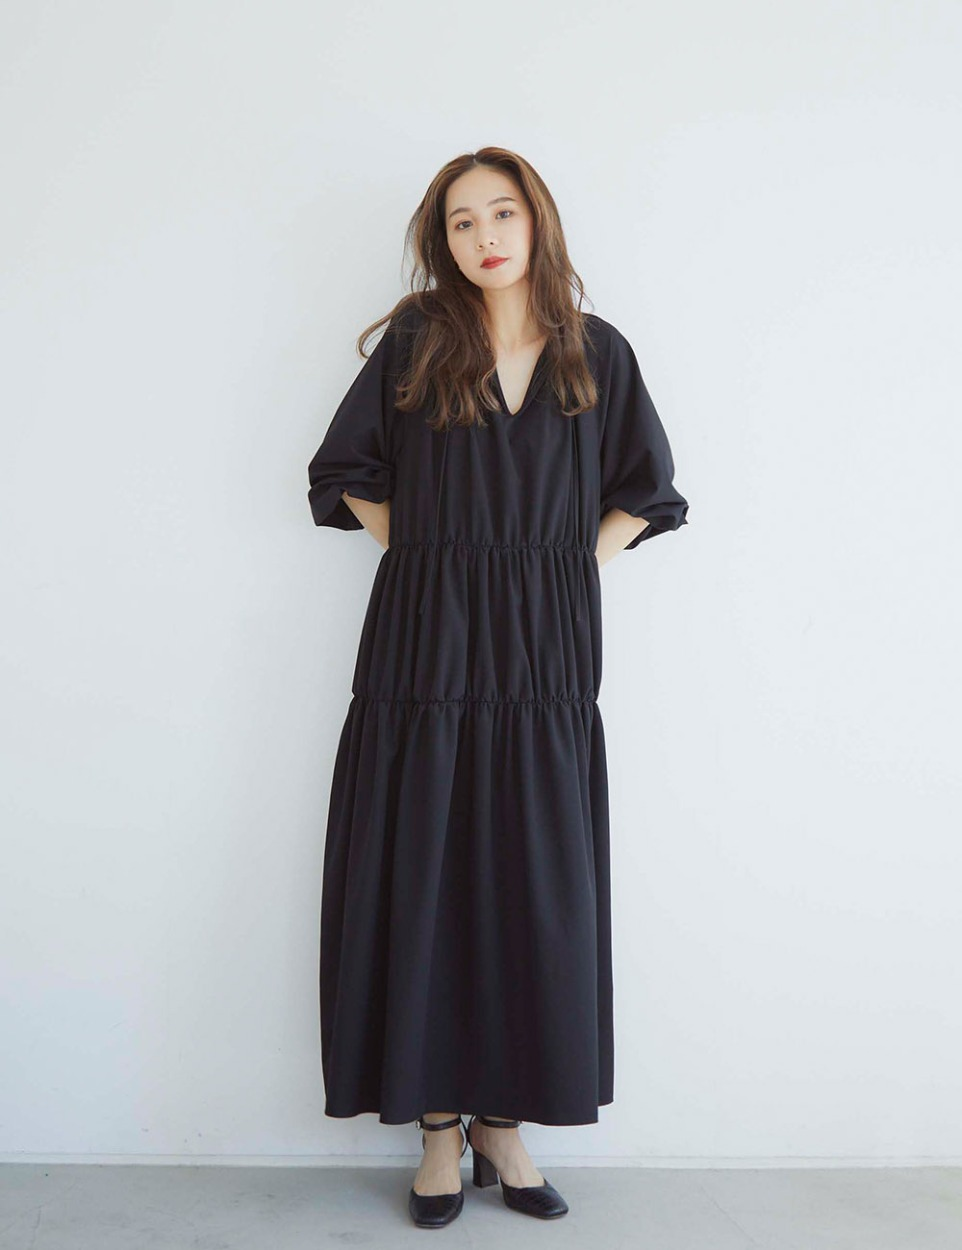 【PRE】RB shirring dress